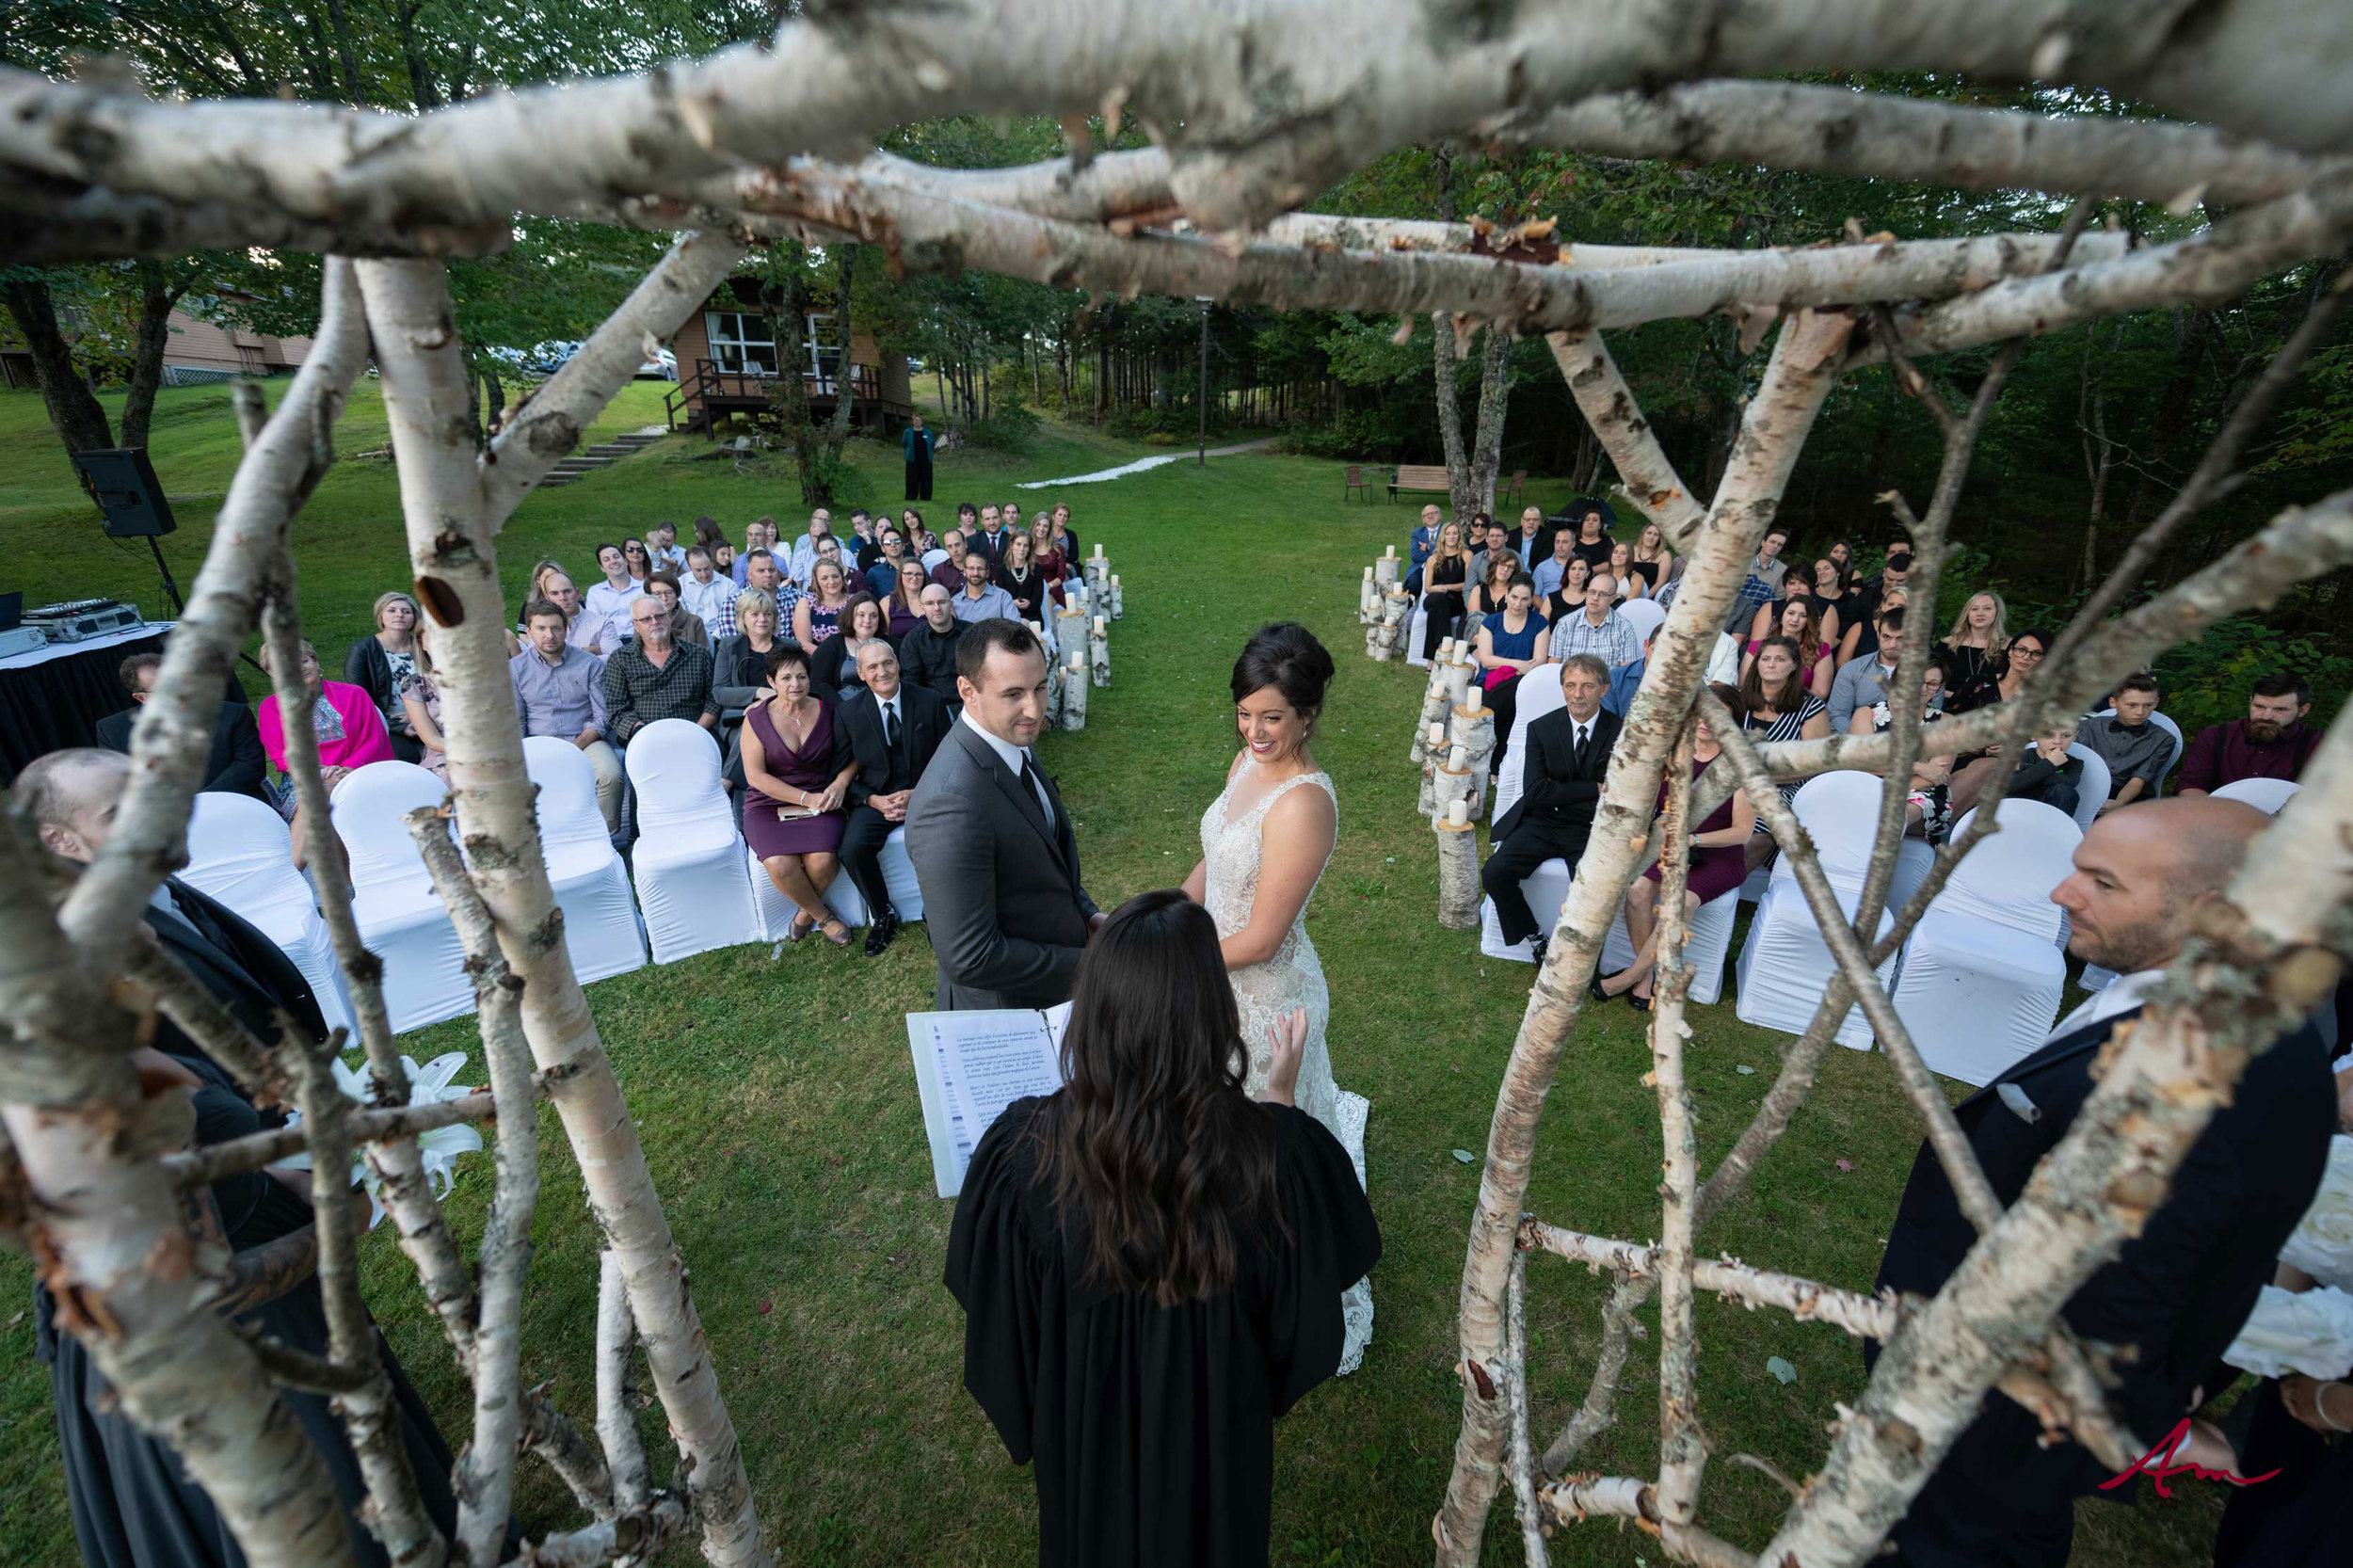 Liscombe-wedding-ceremony-by-river.jpg